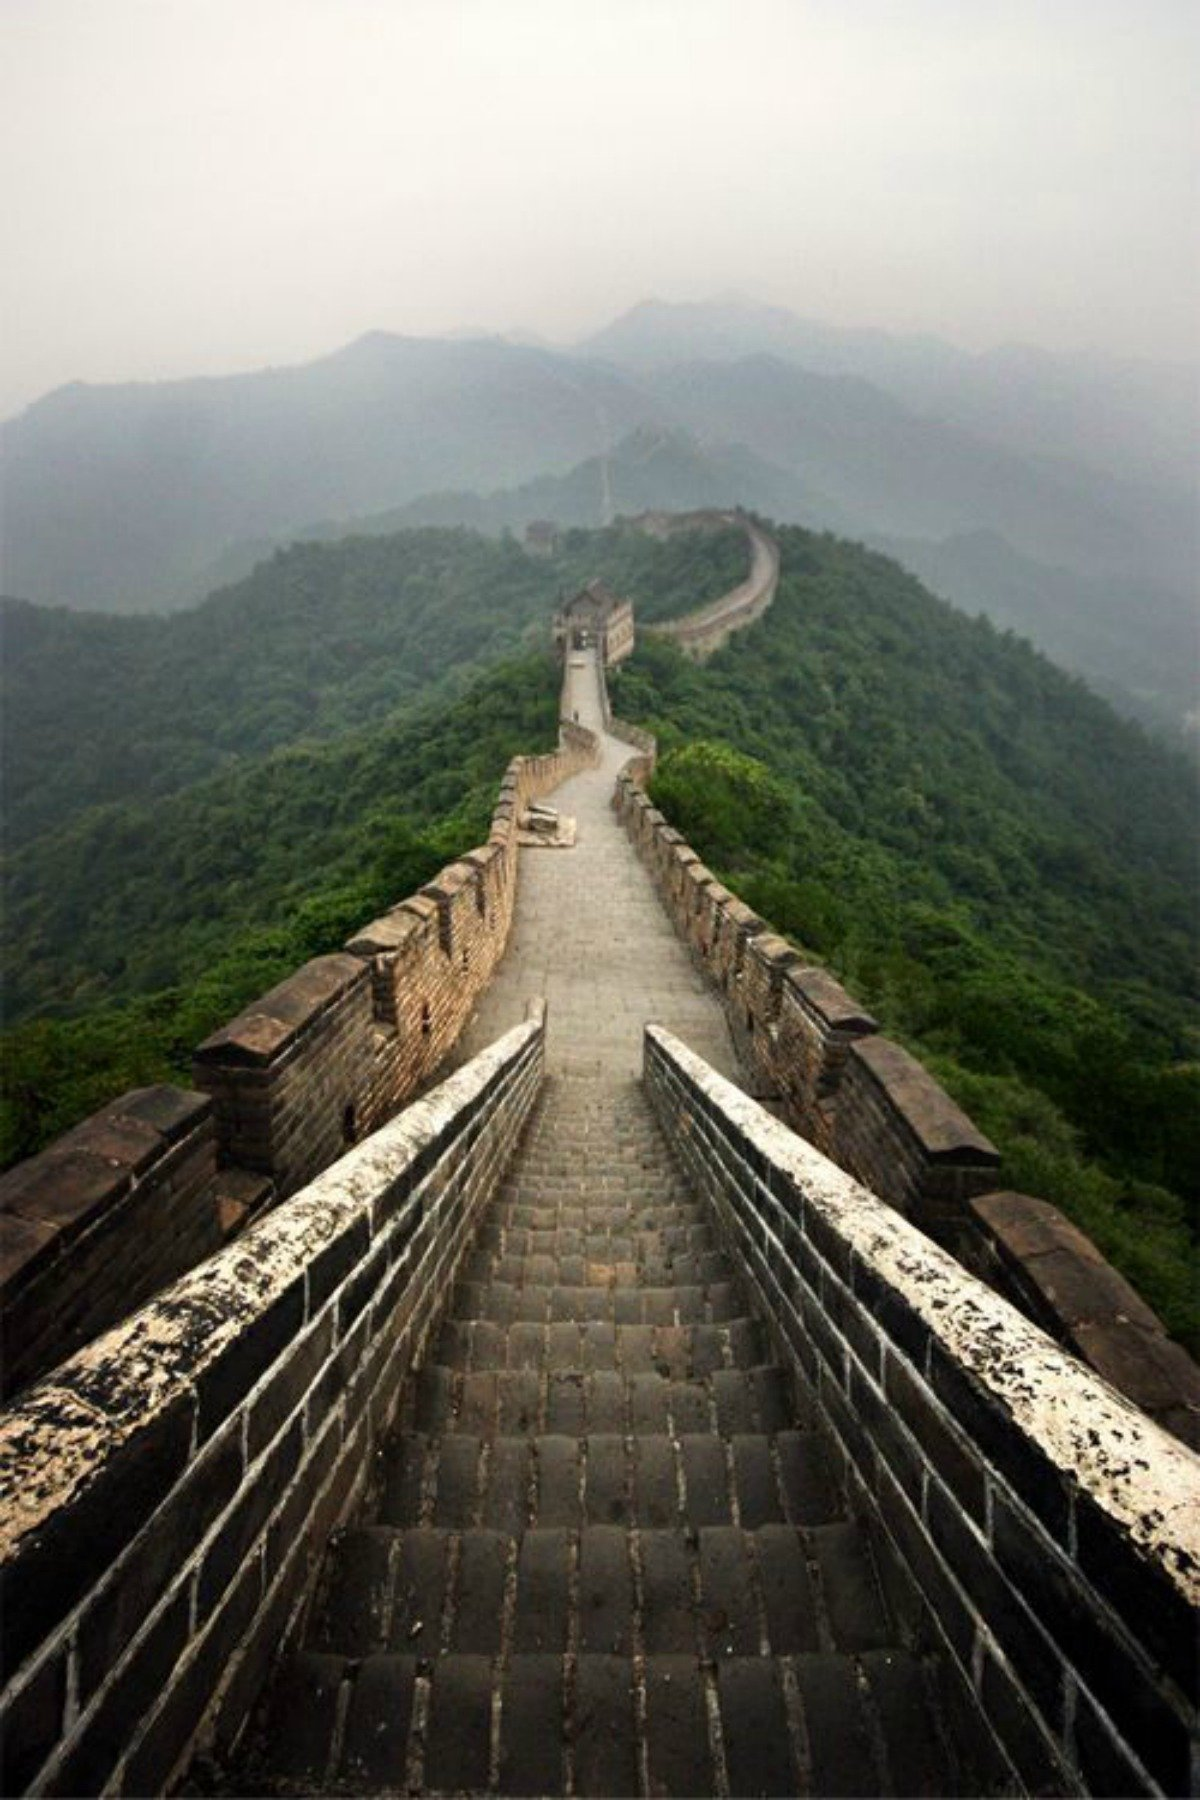 surprisinglives.net/great-wall-china-photo/